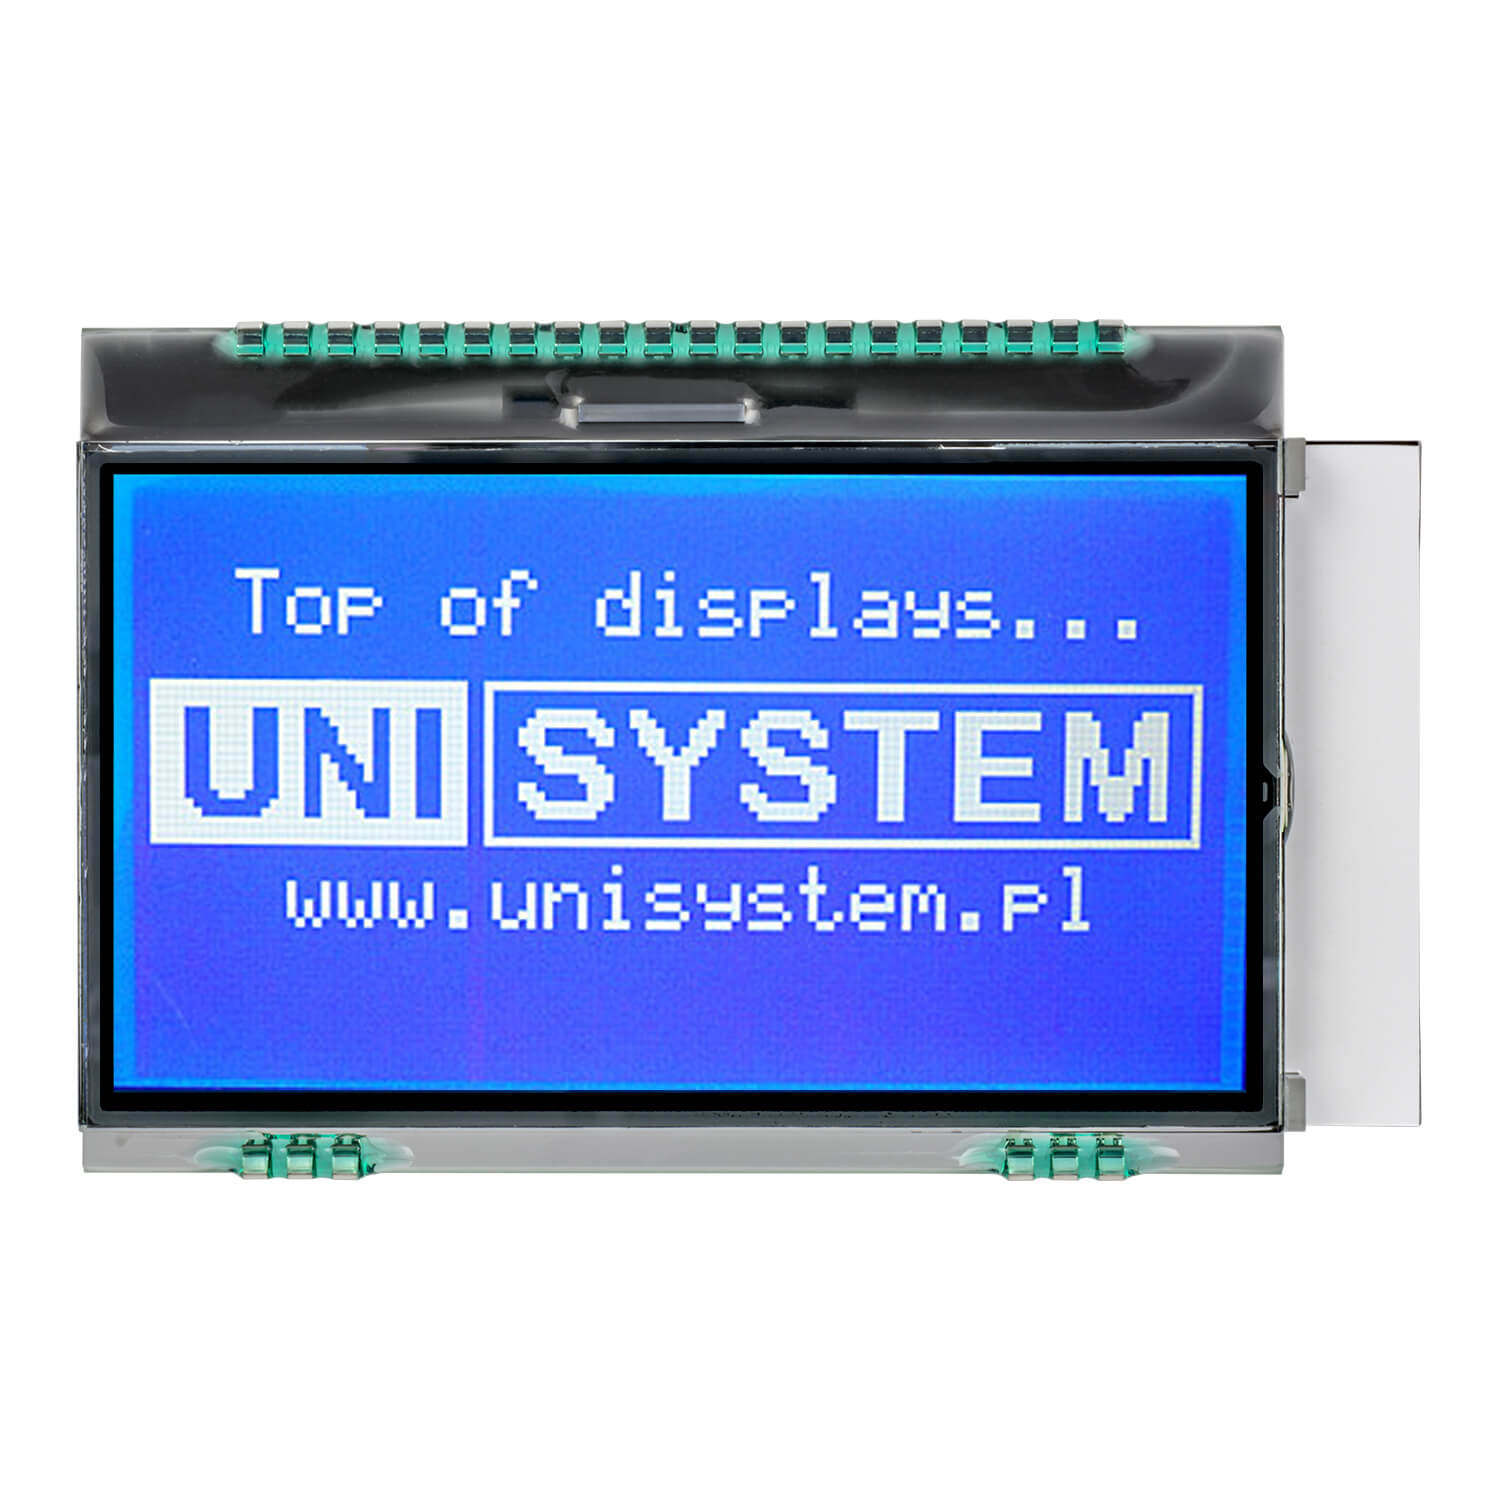 WDO0066-TML#06 - Graphic LCD display from Winstar Co. (128x64, transmissive, negative STN, blue background, white content)